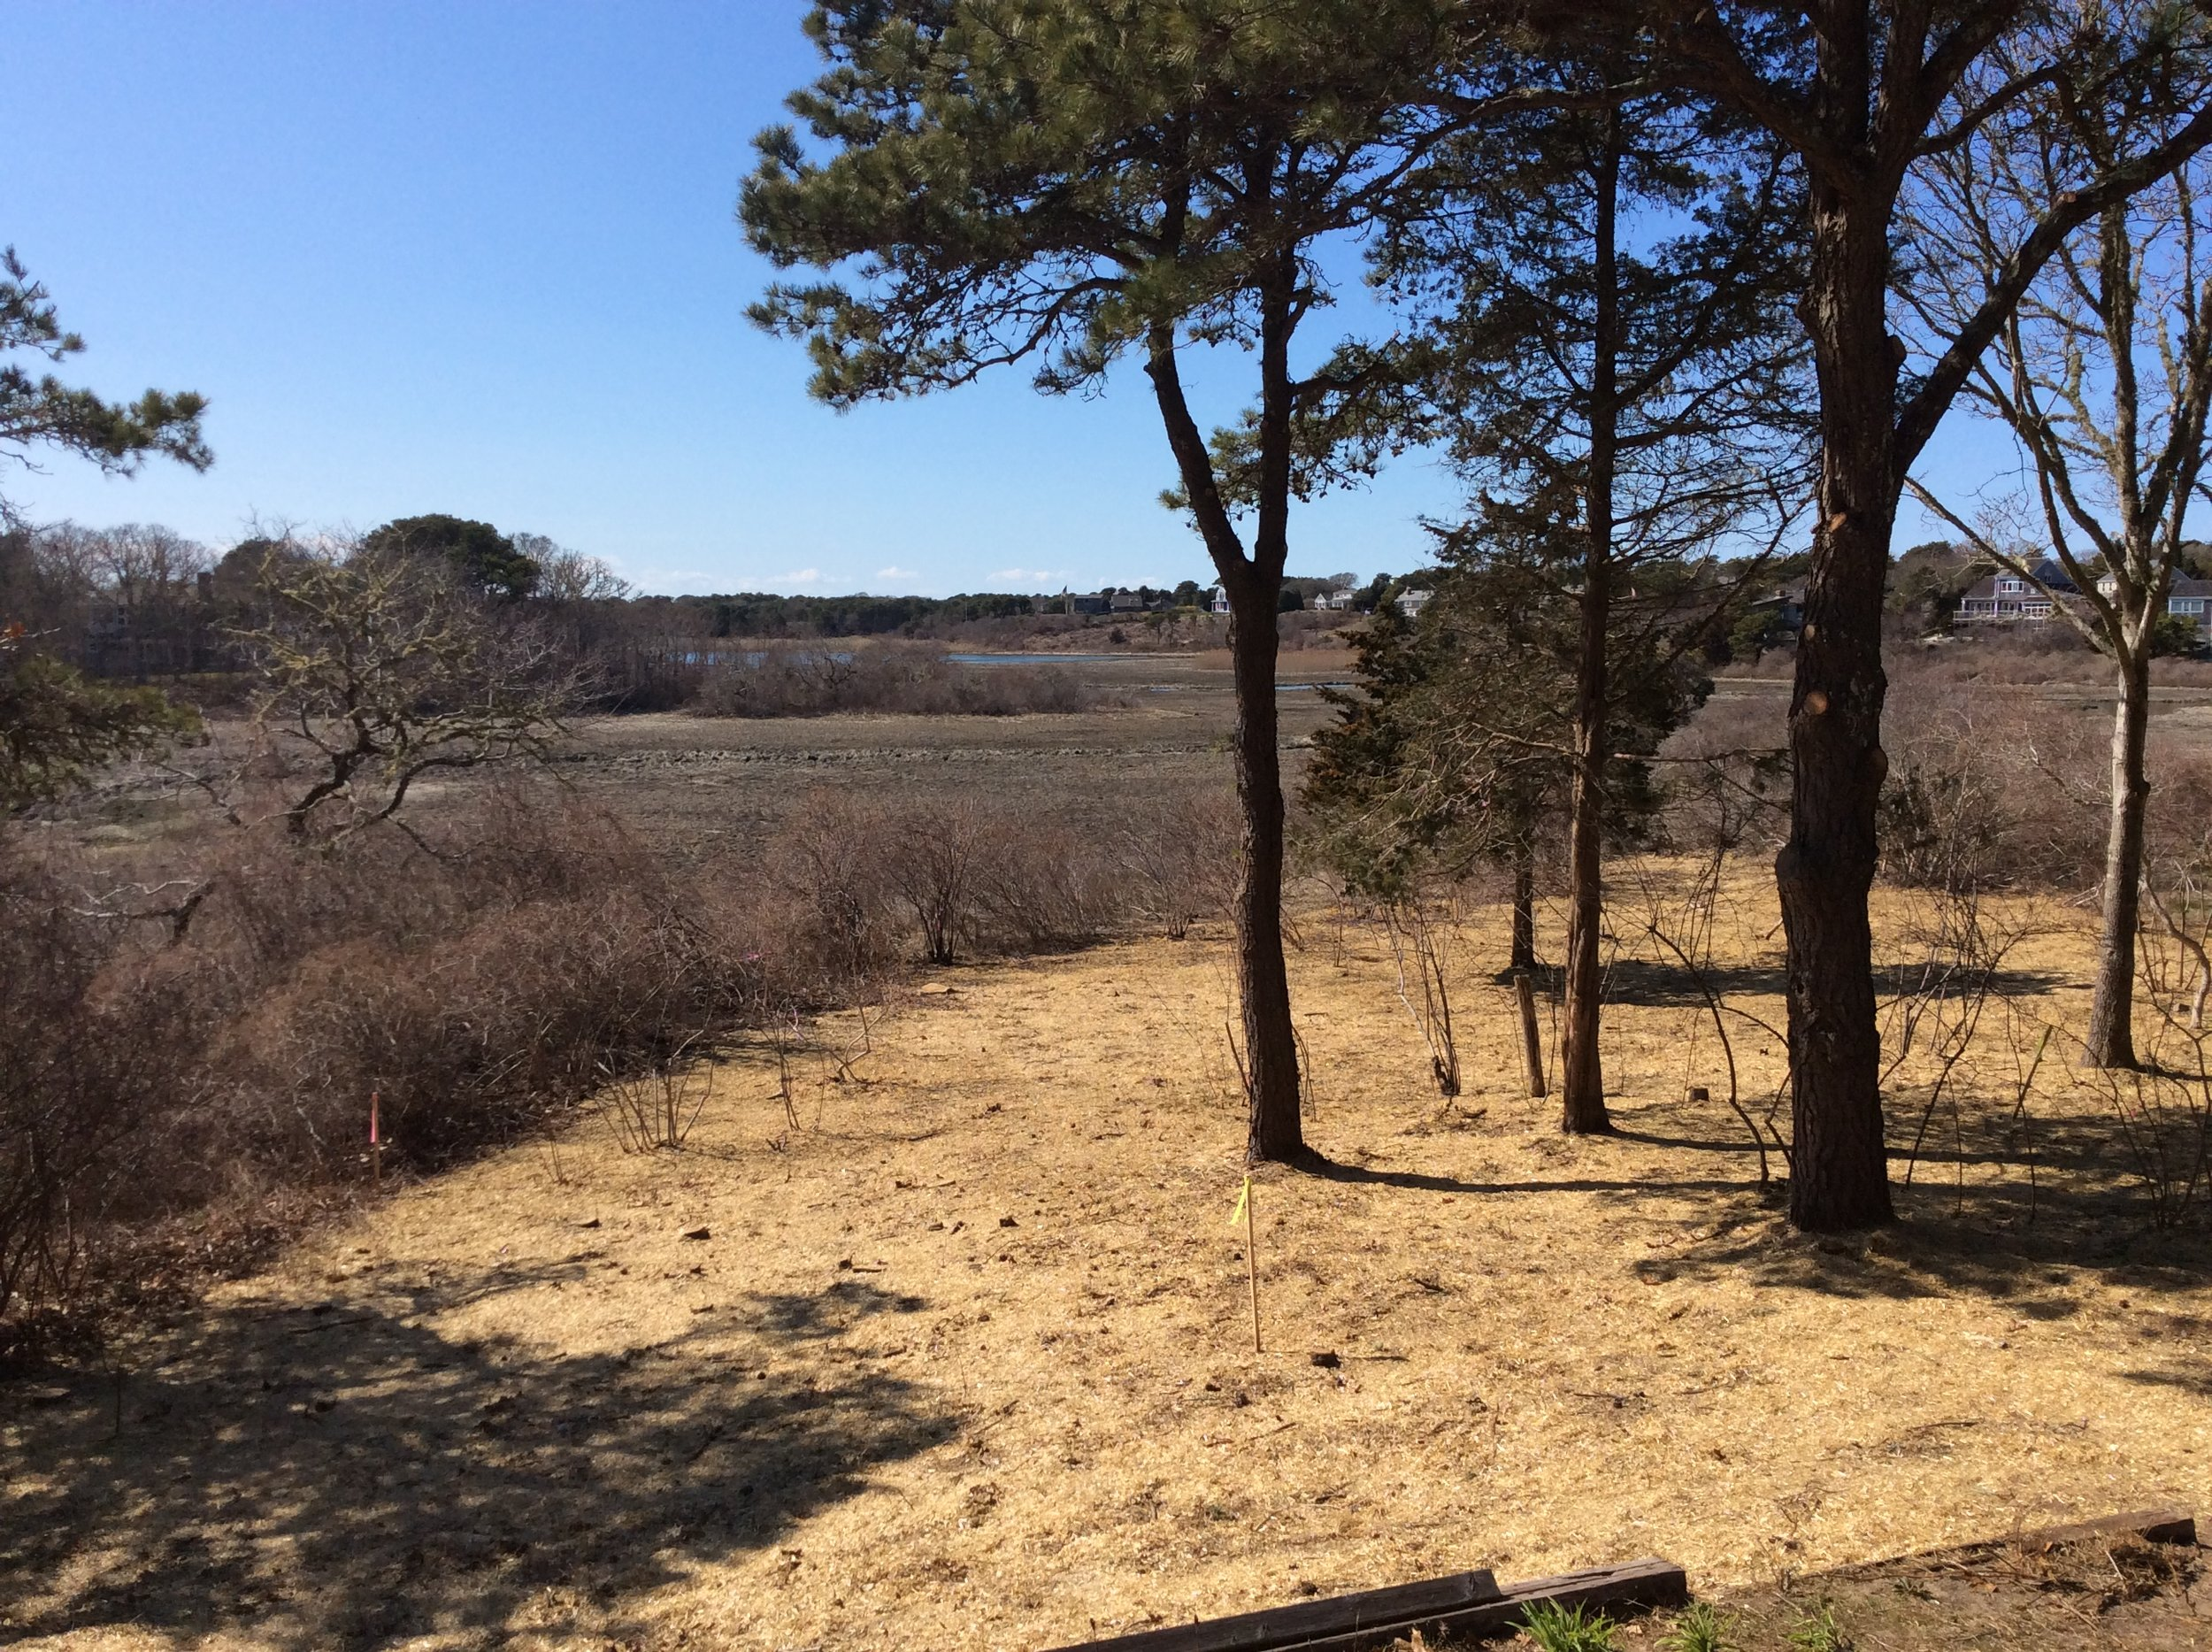 DURING: View of management area after invasive species have been removed, area has been seeded with native grass and wildflower mix